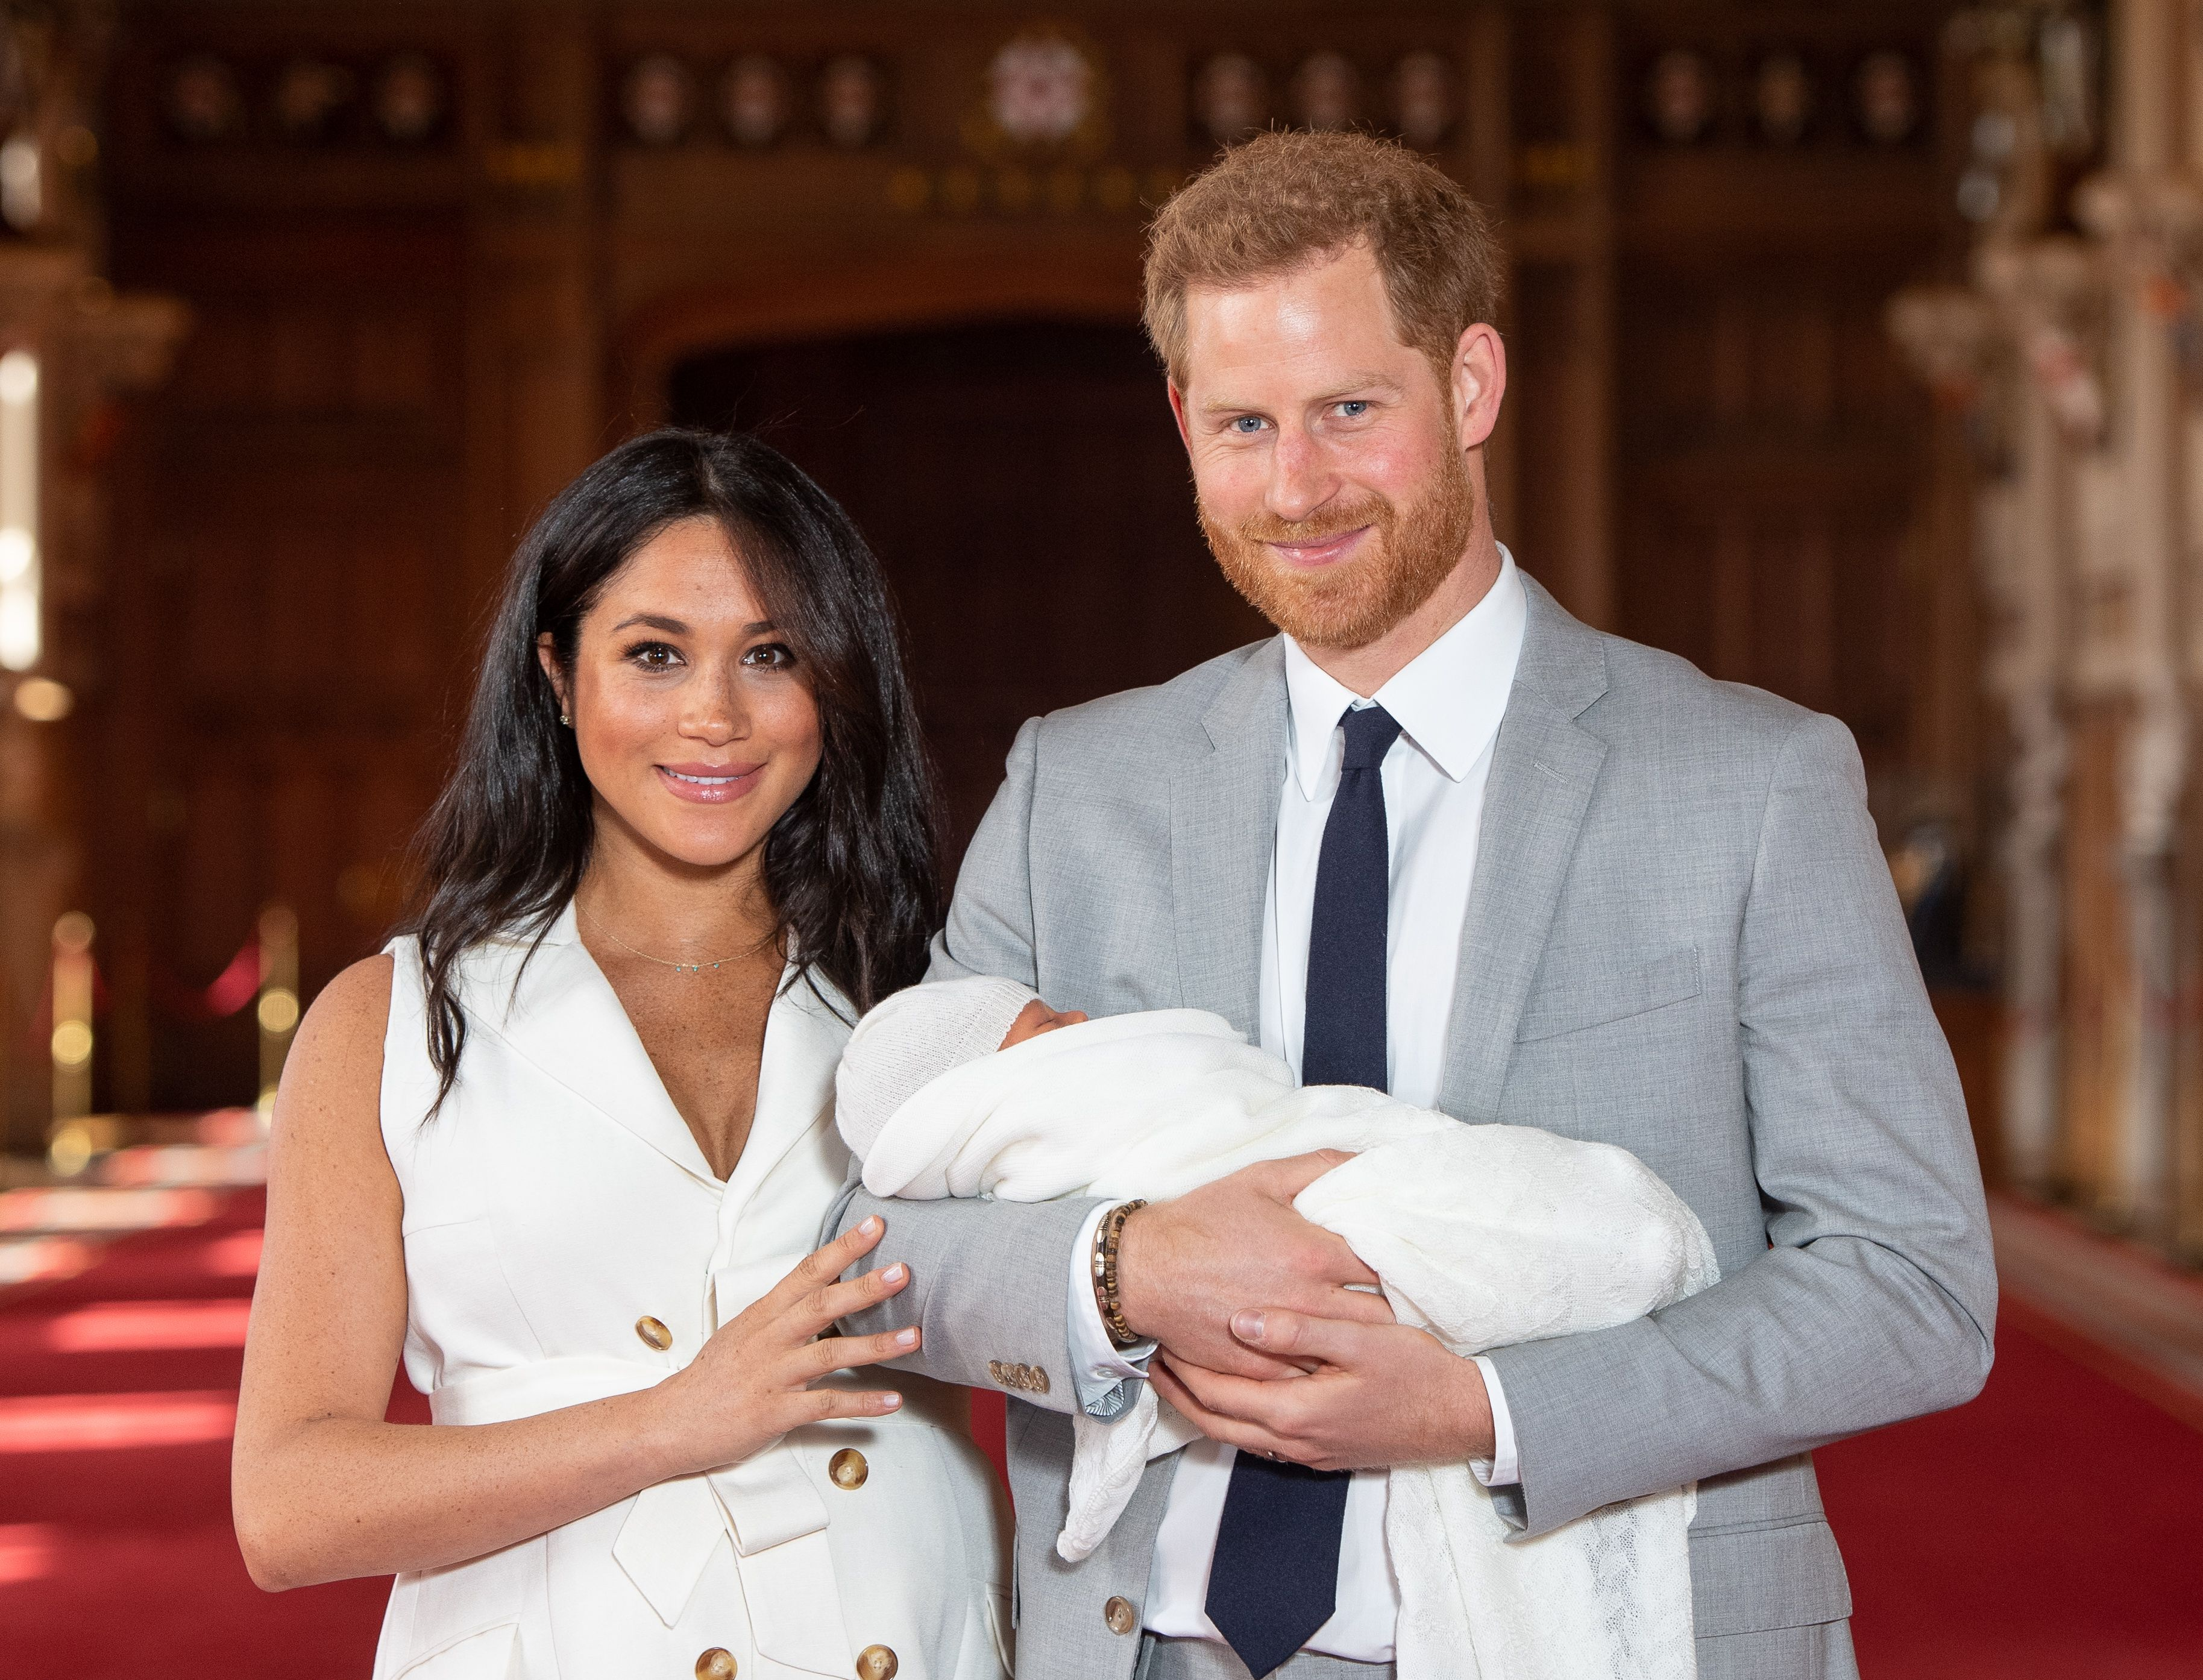 Meghan Markle And Prince Harry Talk Archie's Adorable Looks And We're Now Obsessed With His Eyebrows